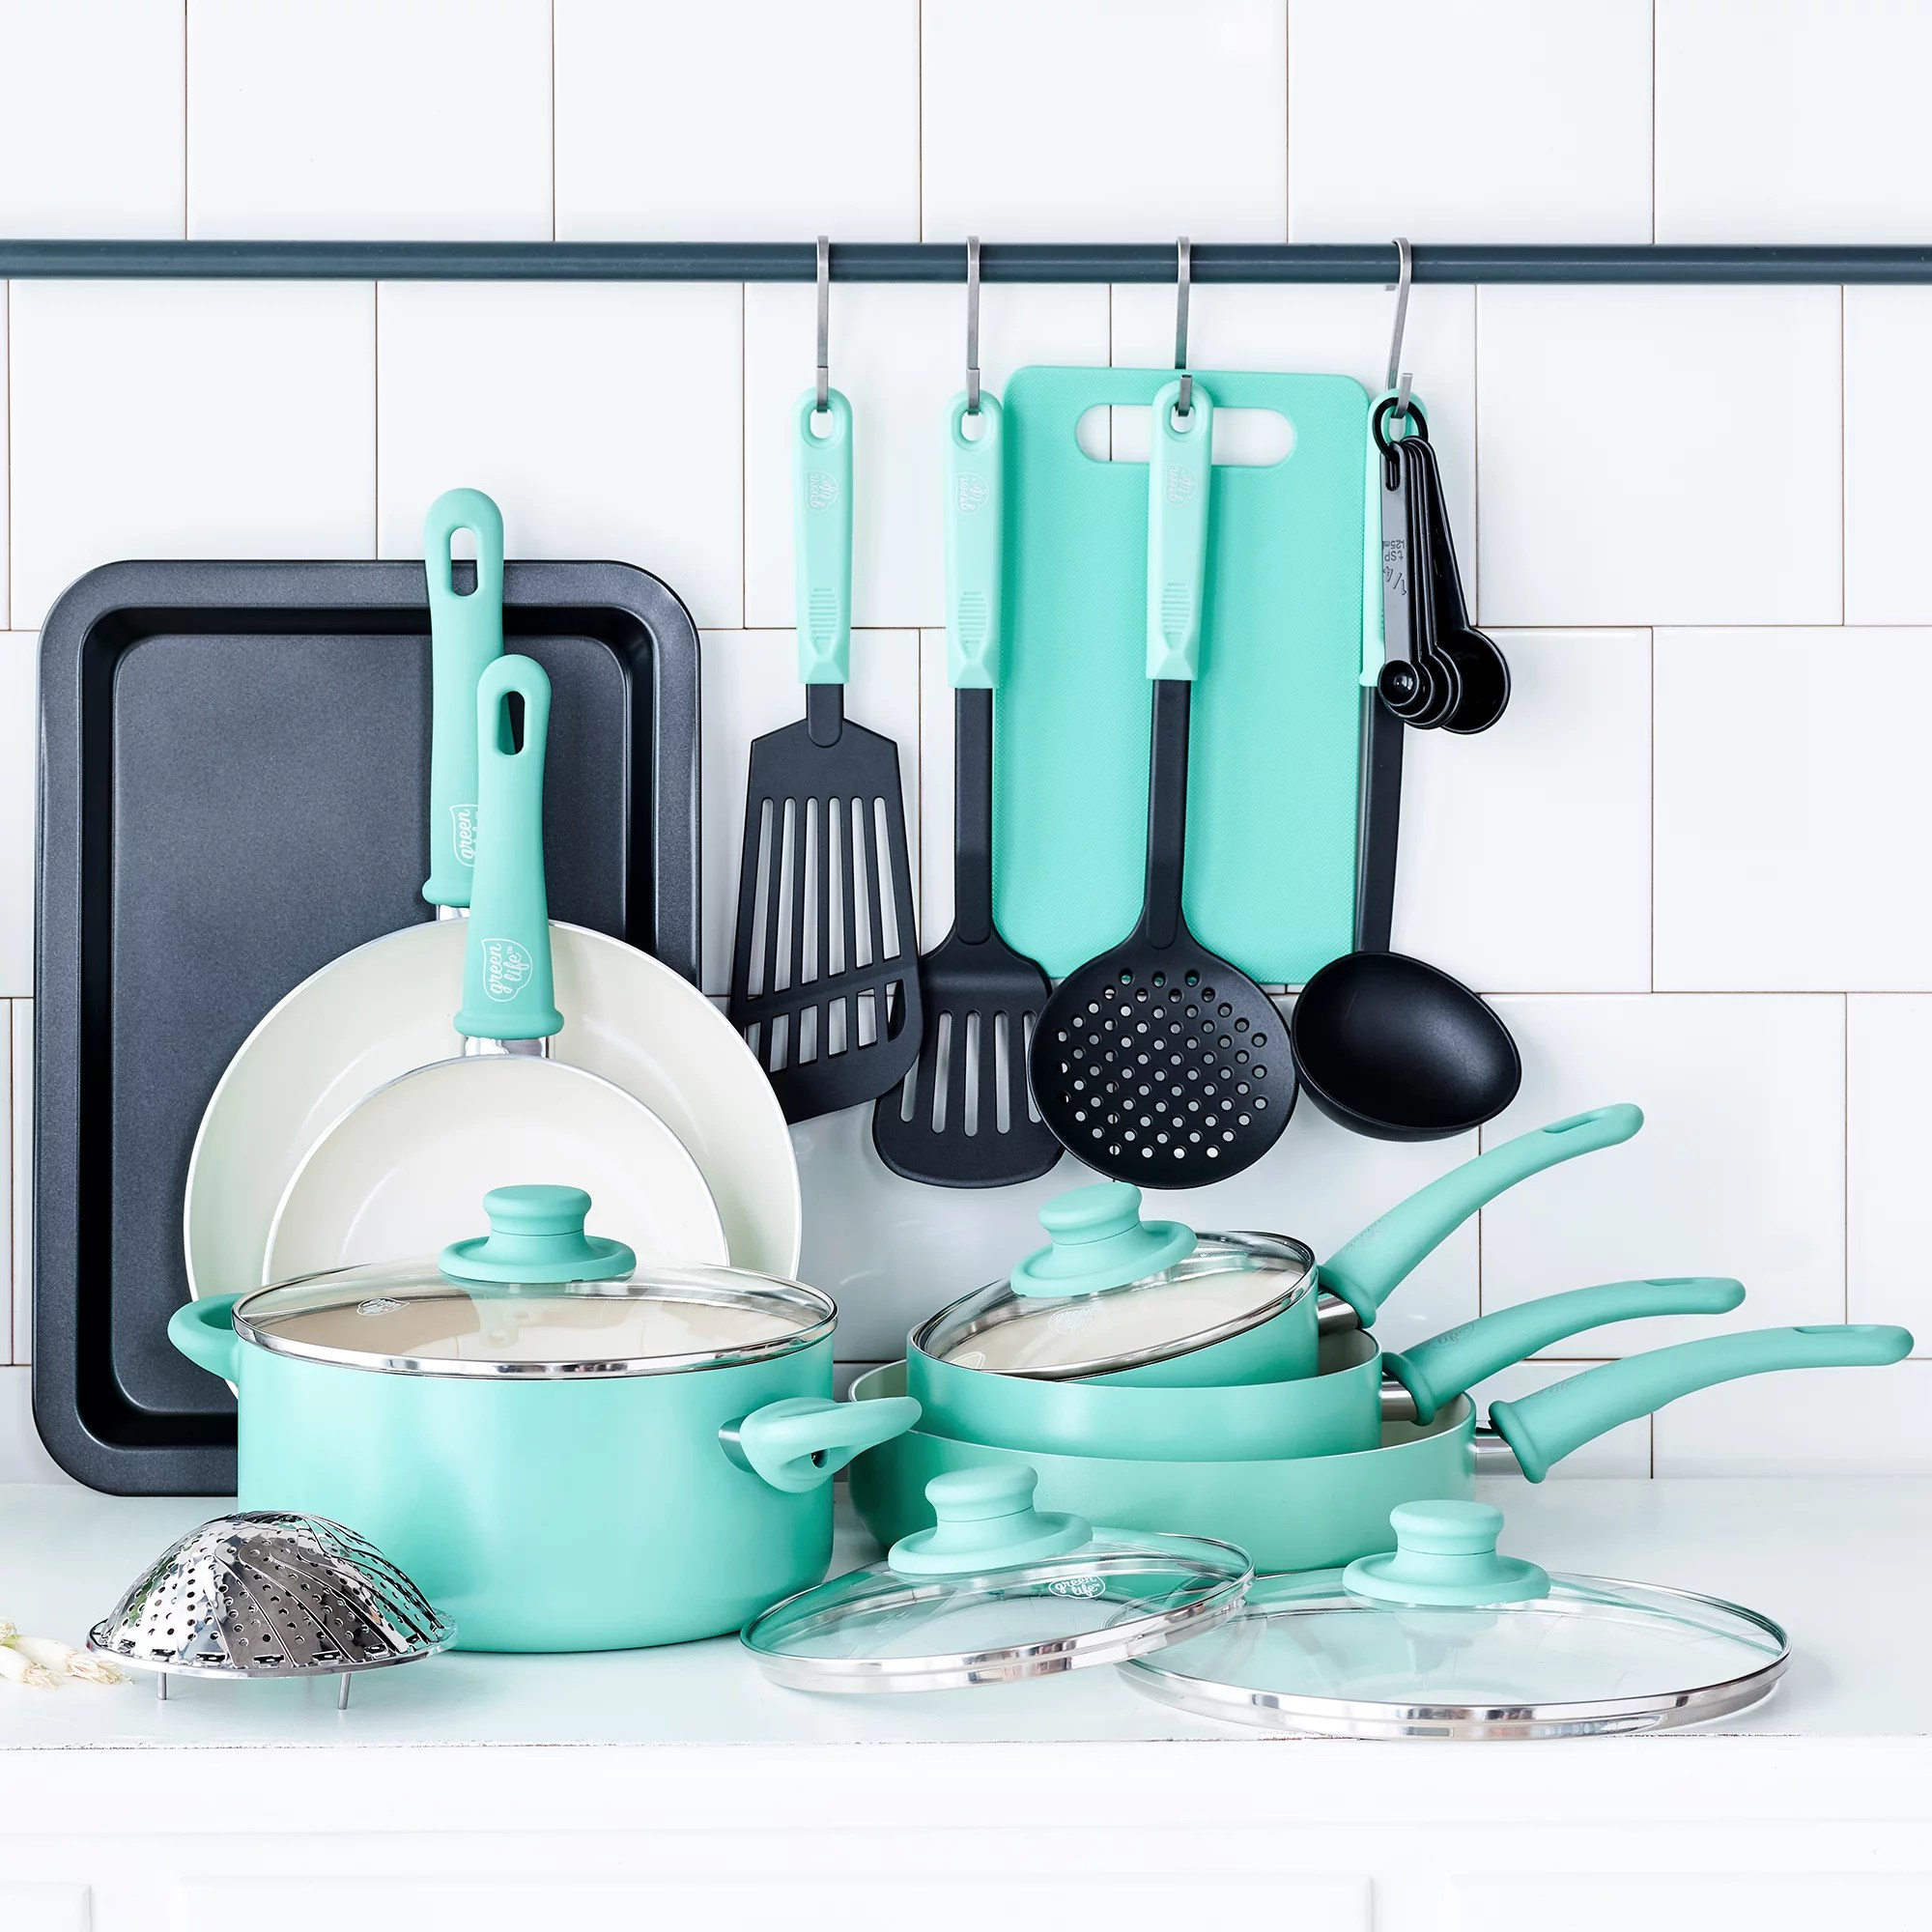 GreenLife 18-Piece Soft Grip Toxin-Free Healthy Ceramic Non-stick Cookware Set, Turquoise